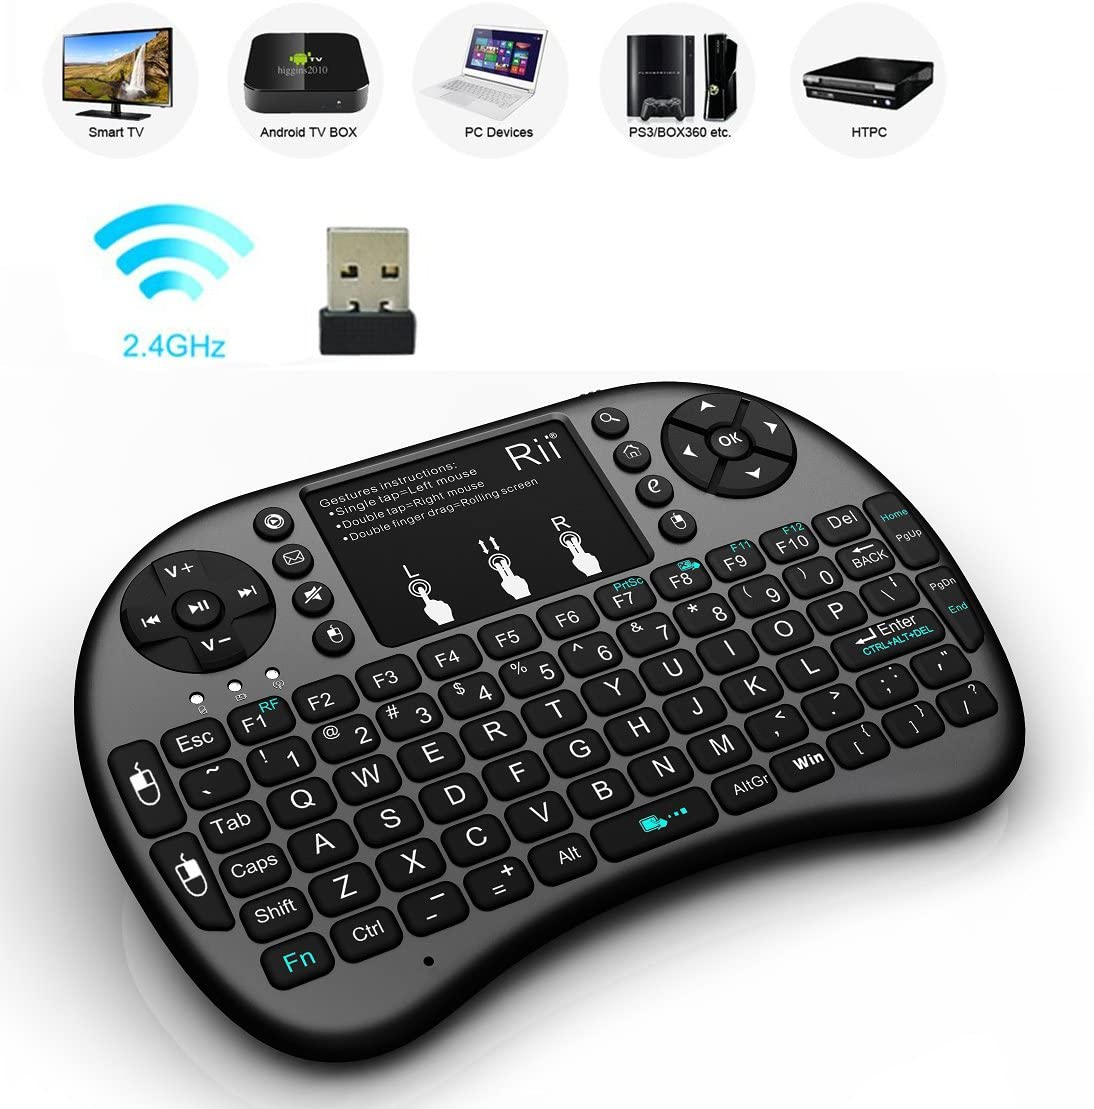 Rii i8 Mini Wireless Keyboard and Mouse Combo Remote Windows 7 8 10 HTPC//IPTV LED Backlit Mini Wireless Touch Keyboard Compatible with Raspberry Pi 2//3,Android TV Box